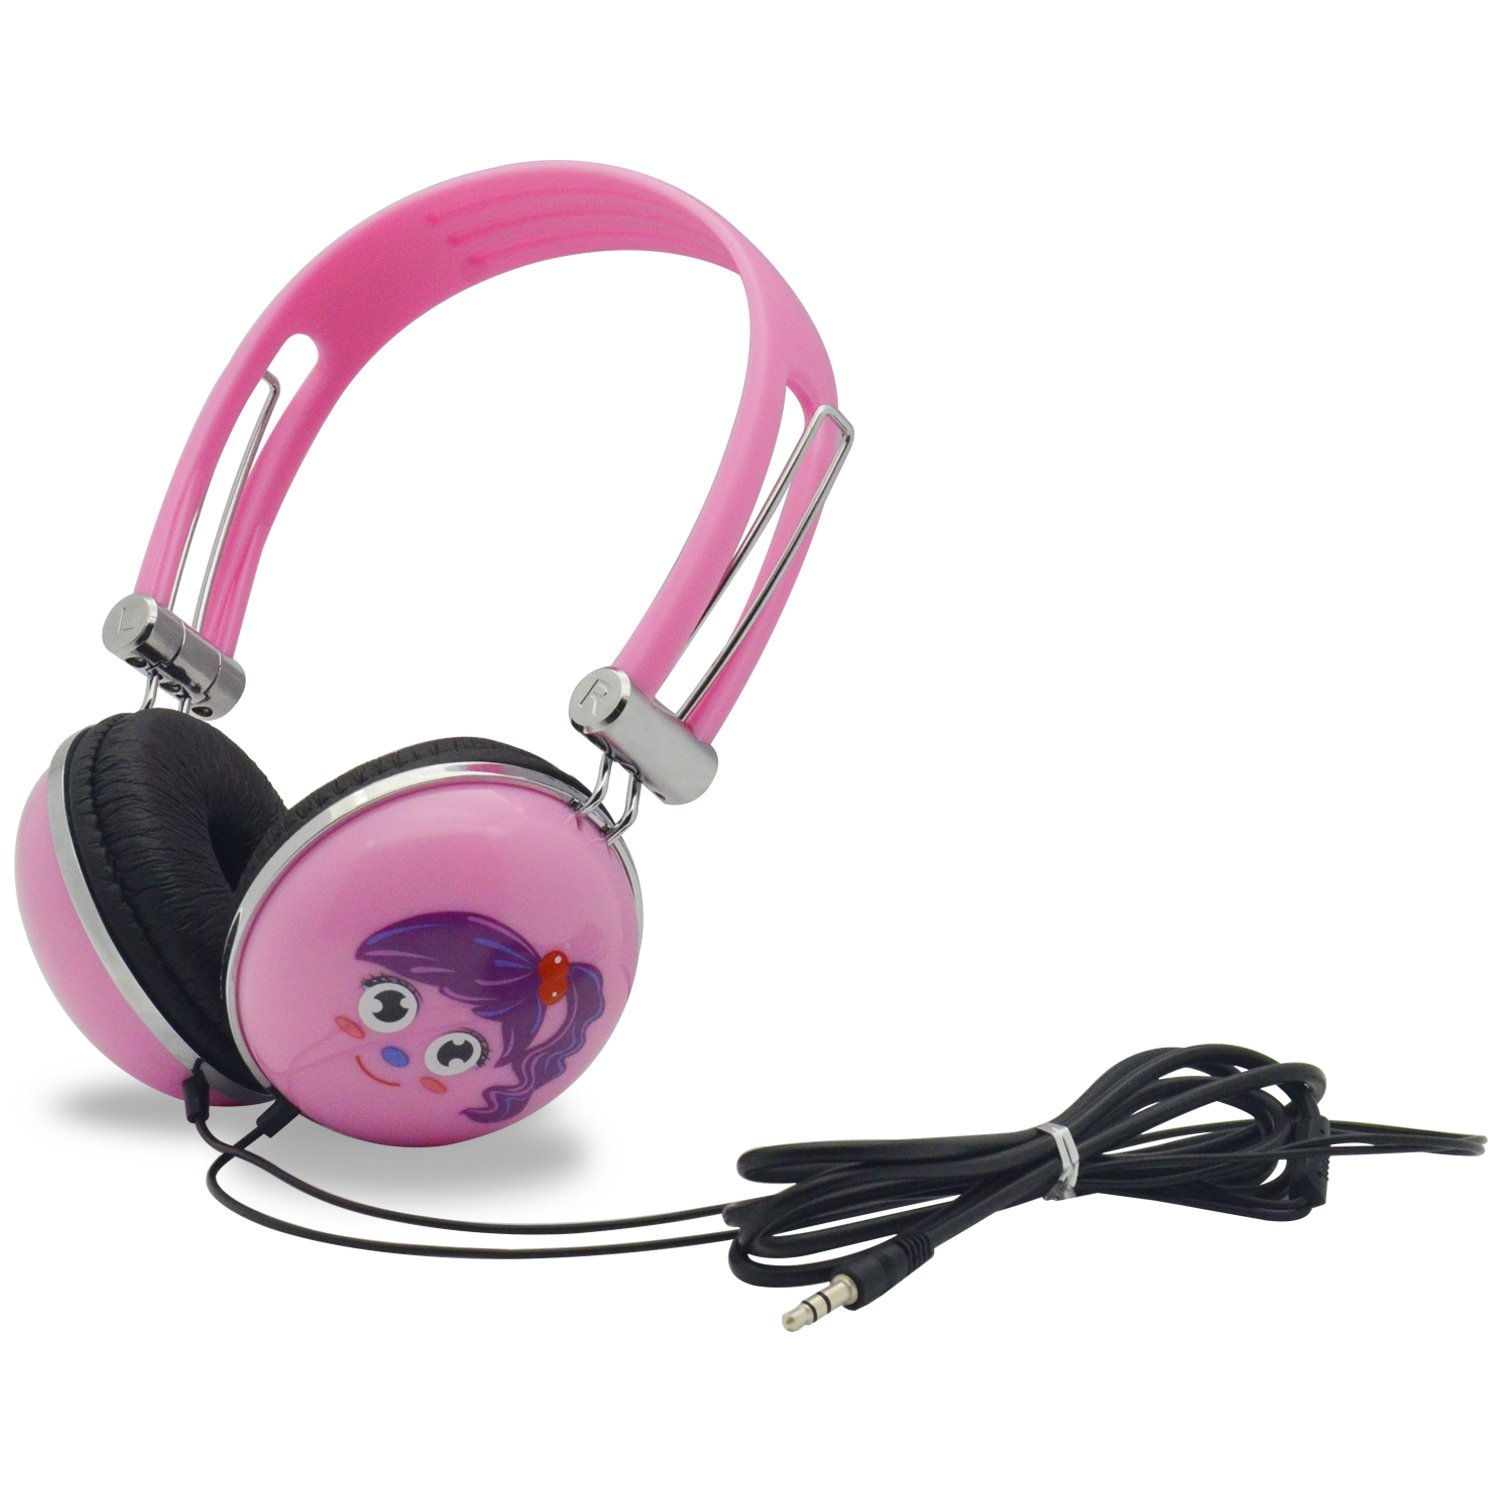 WONNIE Headset for Portable DVD Player, PC, Mobile Phone, Cartoon Headphone (Pink) by WONNIE